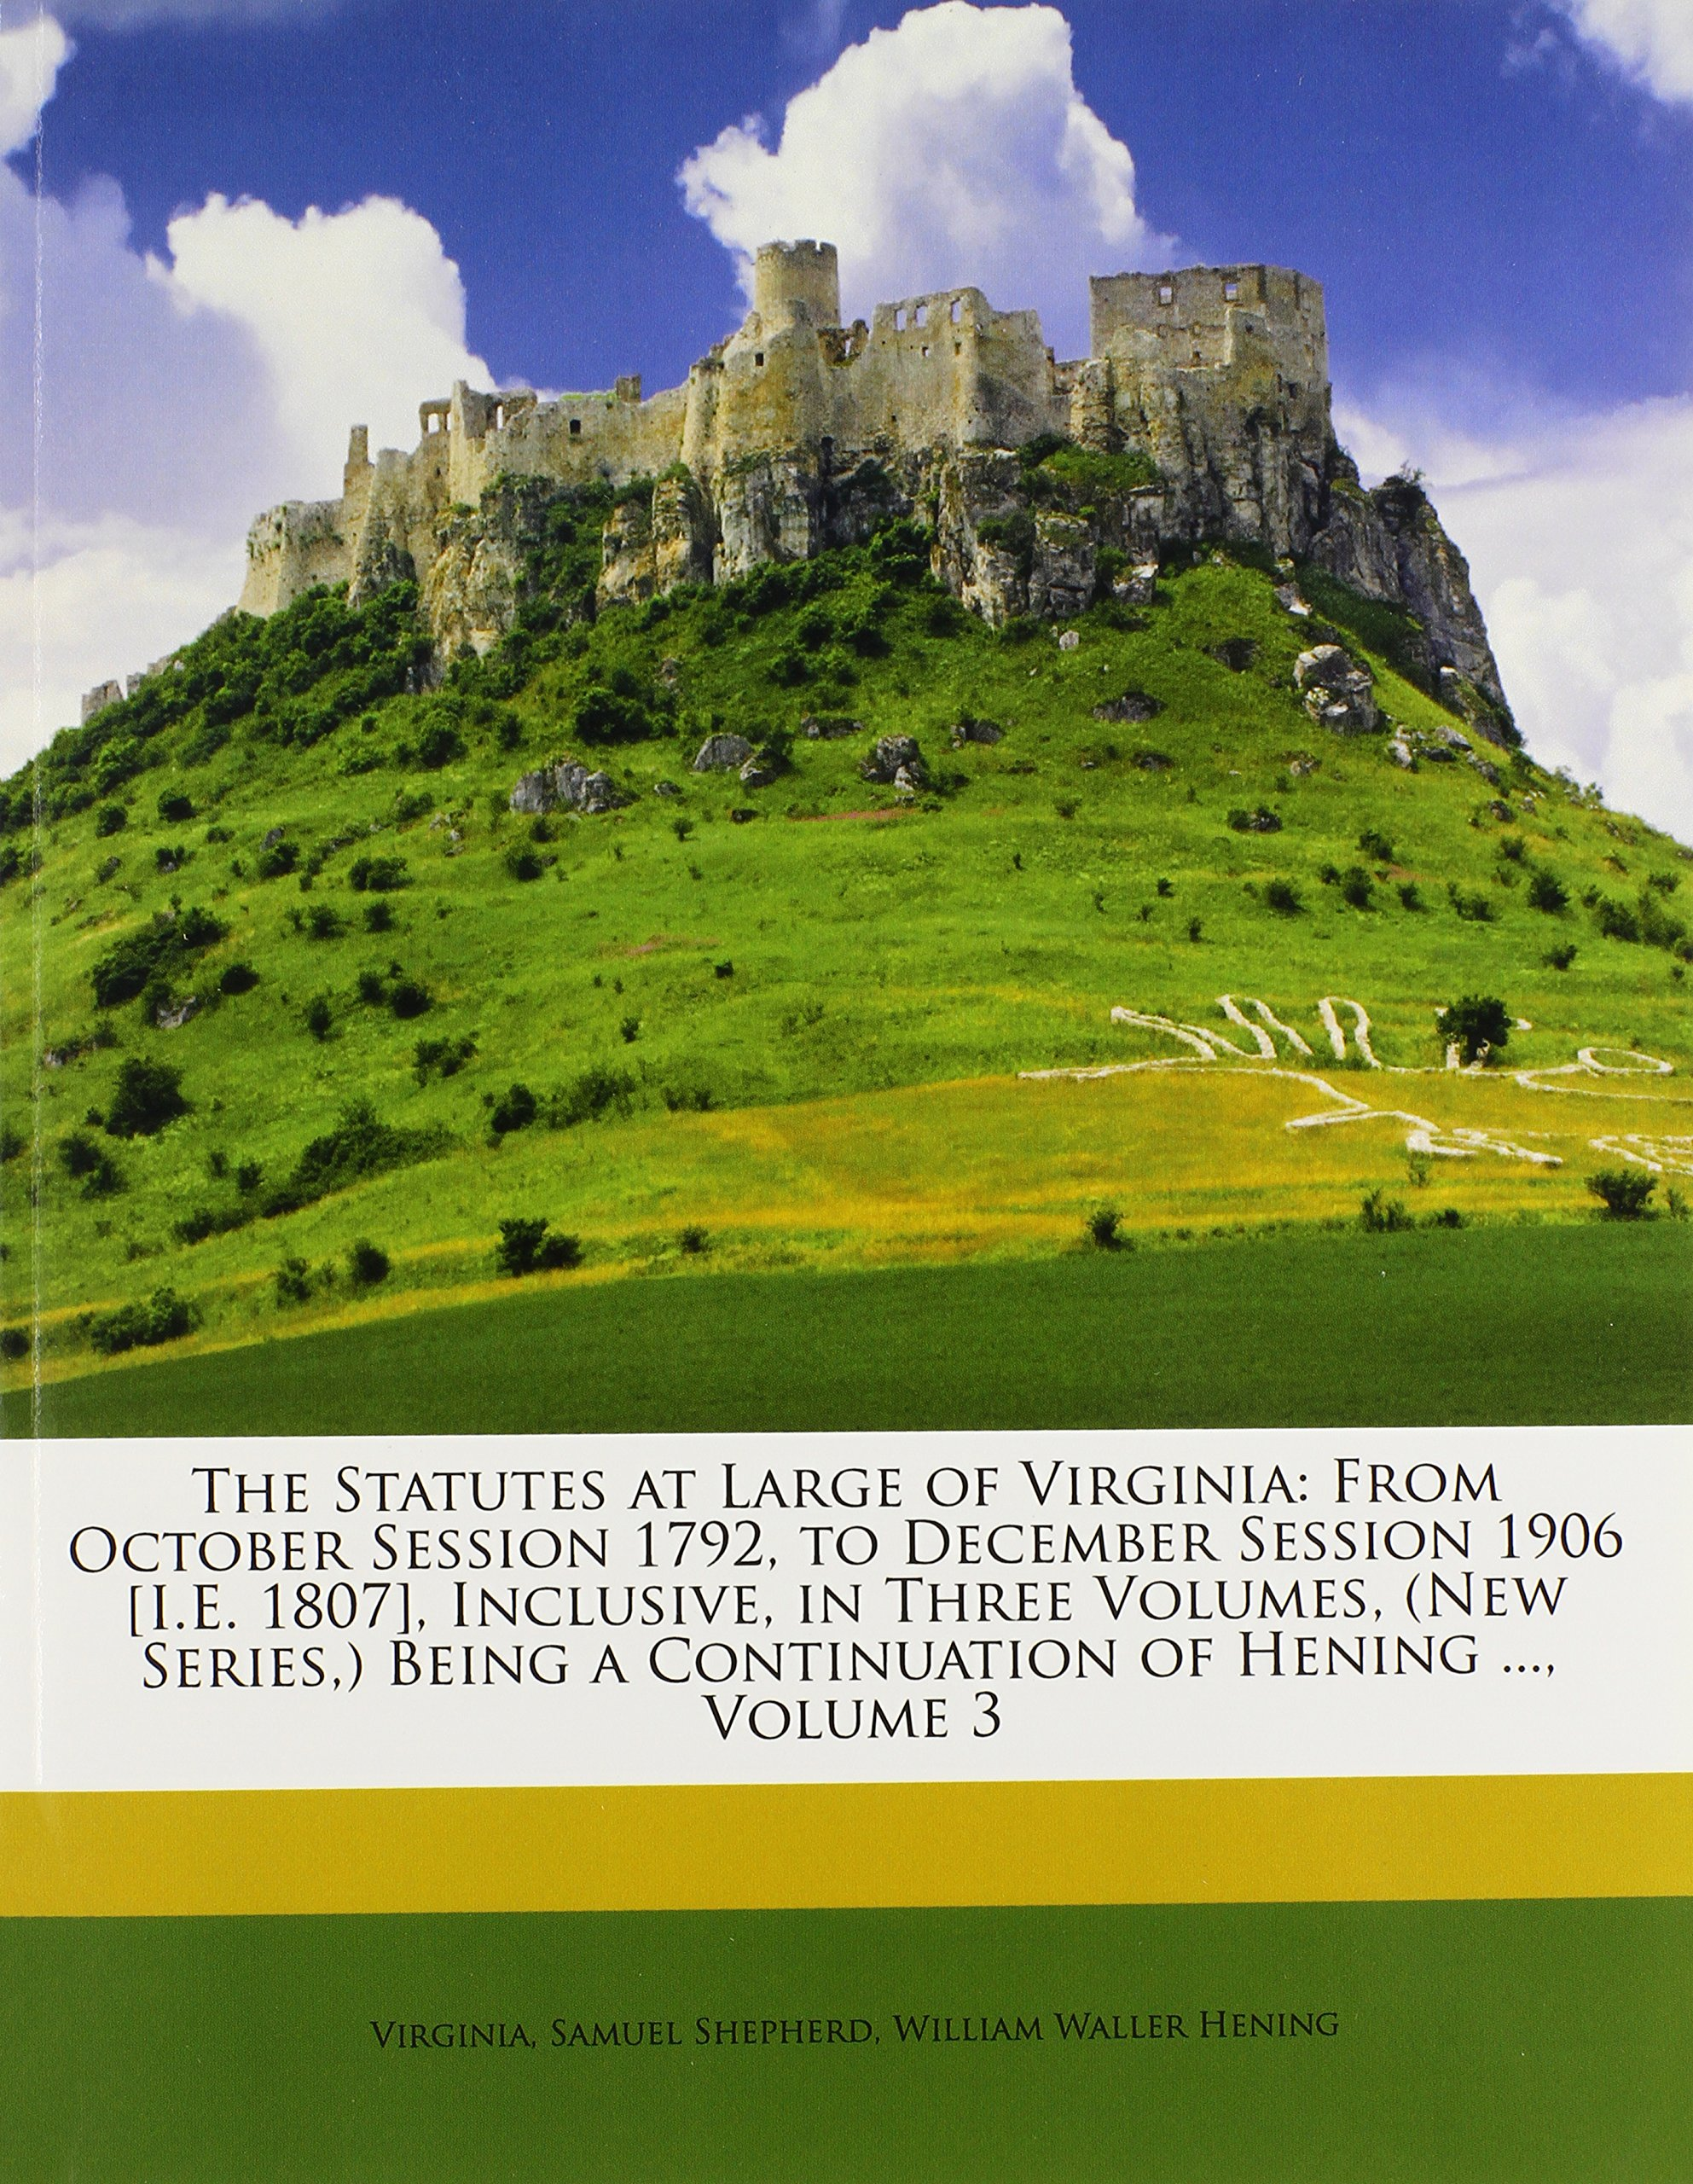 Read Online The Statutes at Large of Virginia: From October Session 1792, to December Session 1906 [I.E. 1807], Inclusive, in Three Volumes, (New Series,) Being a Continuation of Hening ..., Volume 3 PDF ePub book